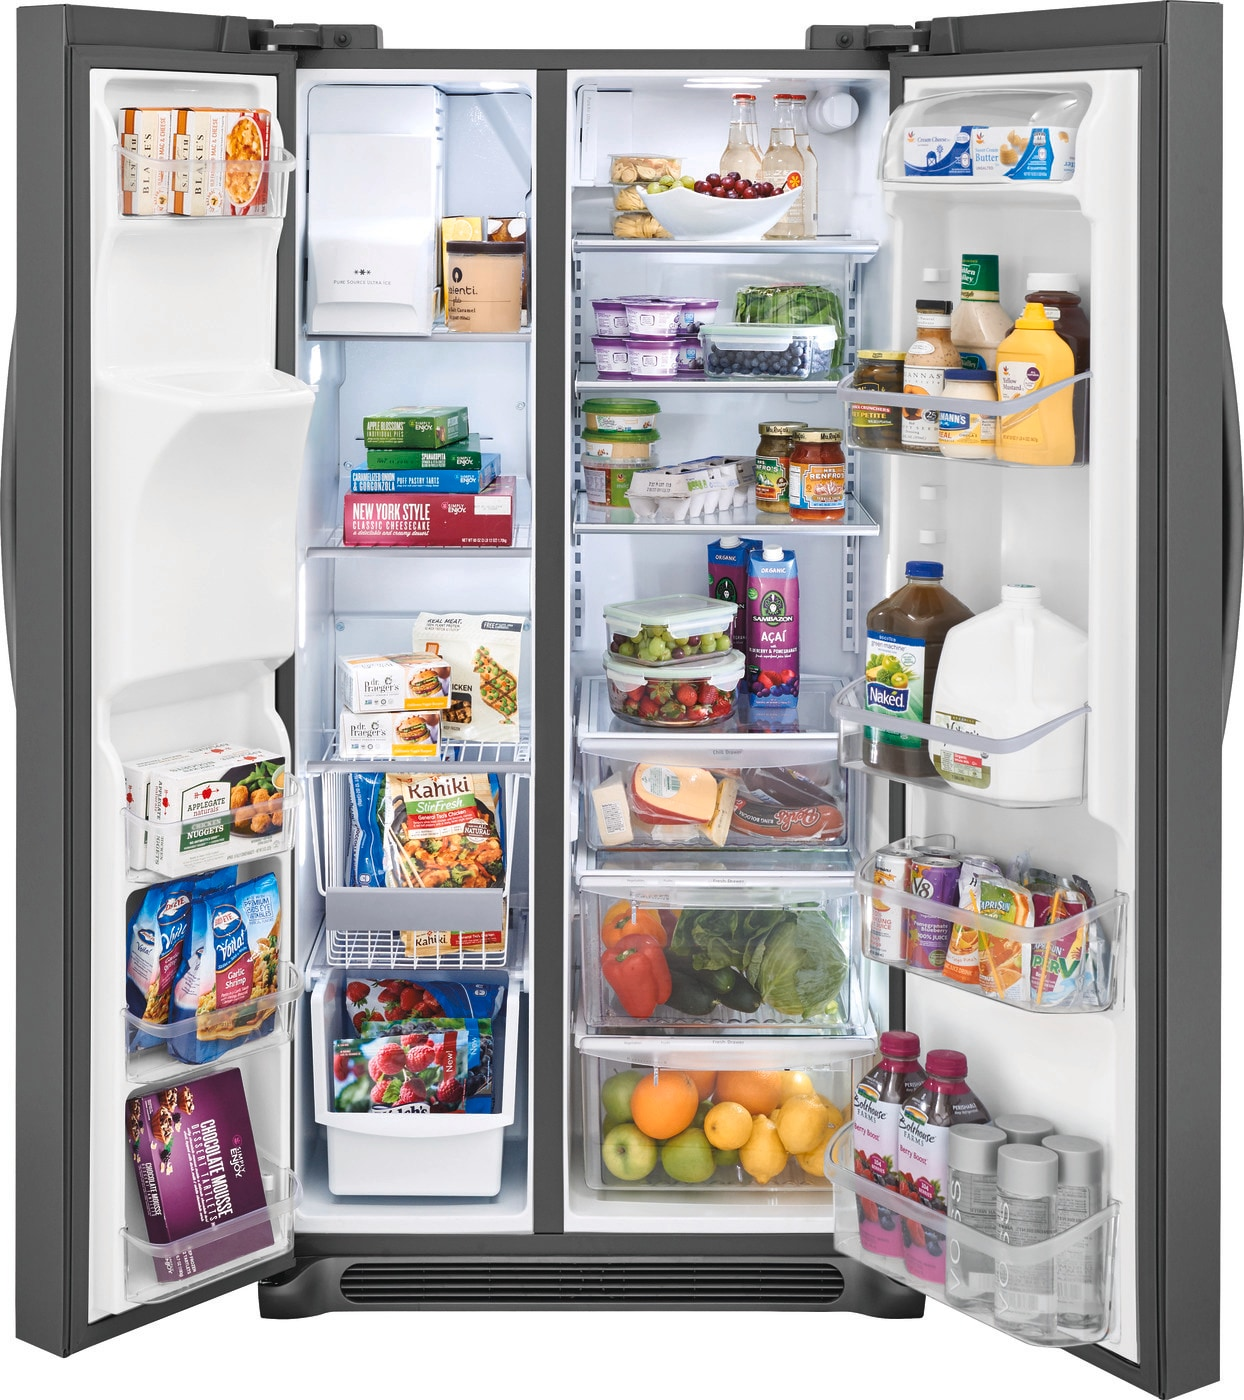 25.5 Cu. Ft. Side-by-Side Refrigerator Black Stainless Steel FGSS2635TD